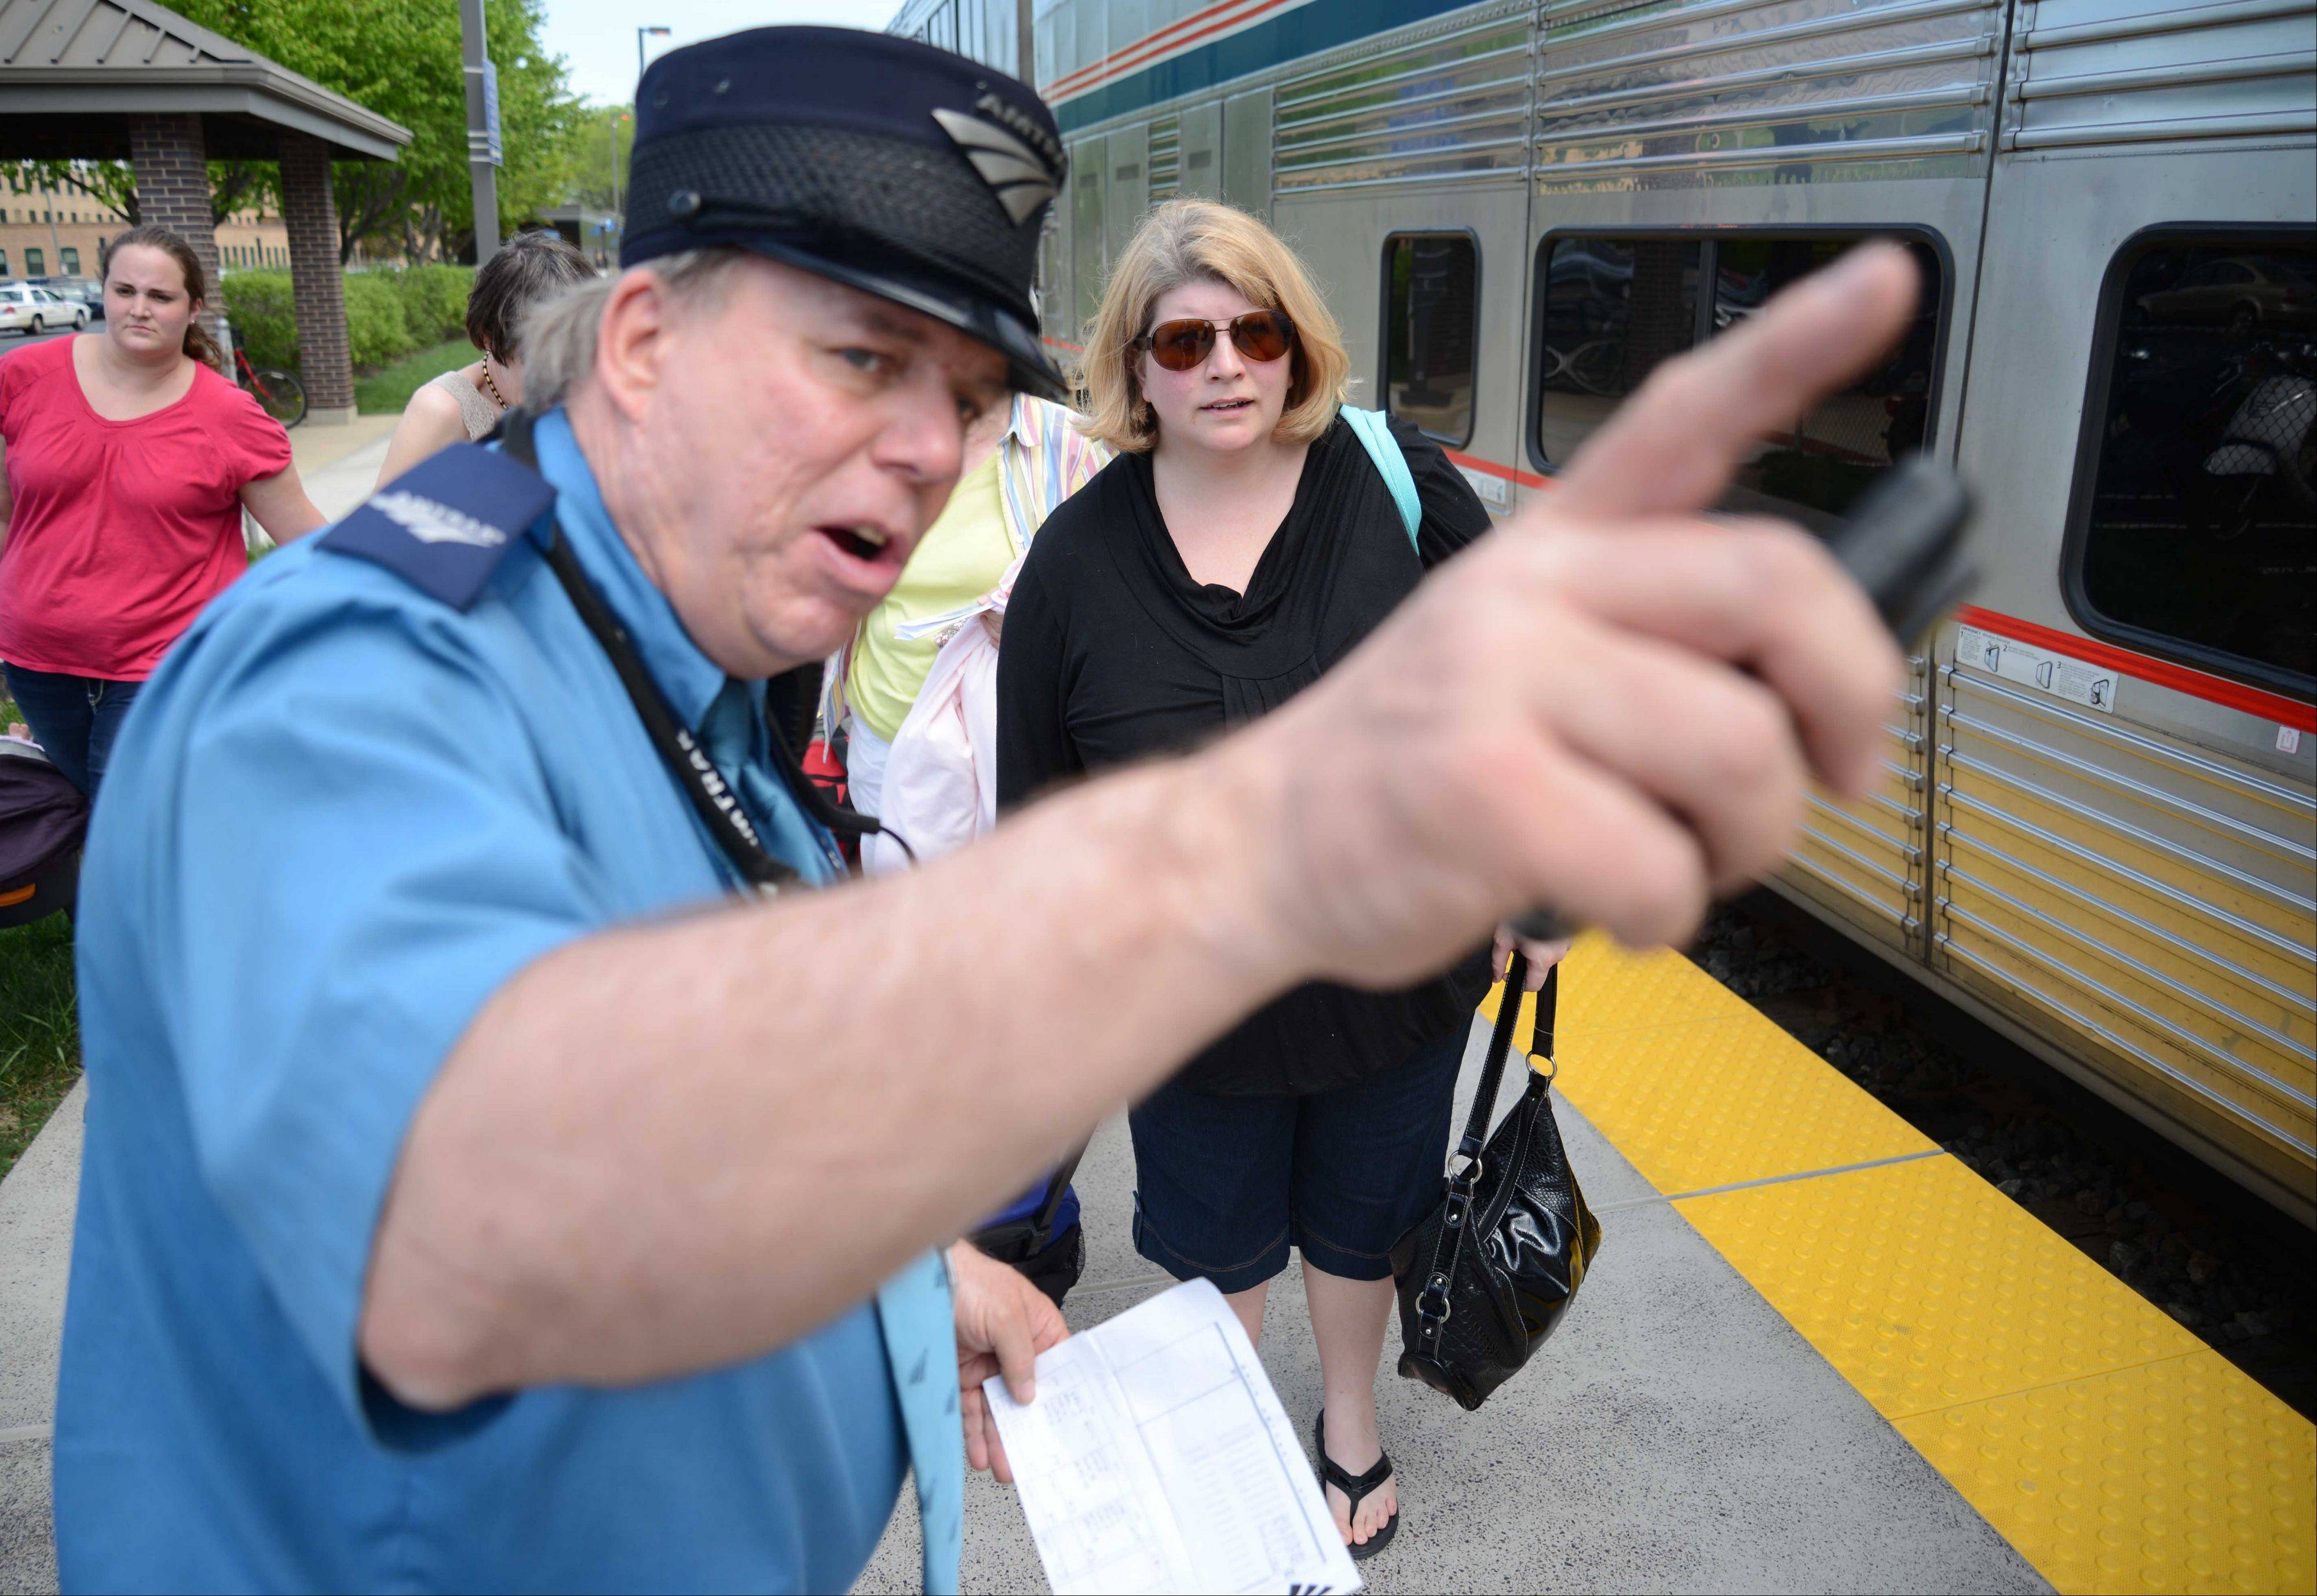 Paul Michna/pmichna@dailyherald.comKevin Crowe, left, helps Jenny Wright of Naperville find her train car on the Amtrak's California Zephyr in Naperville.